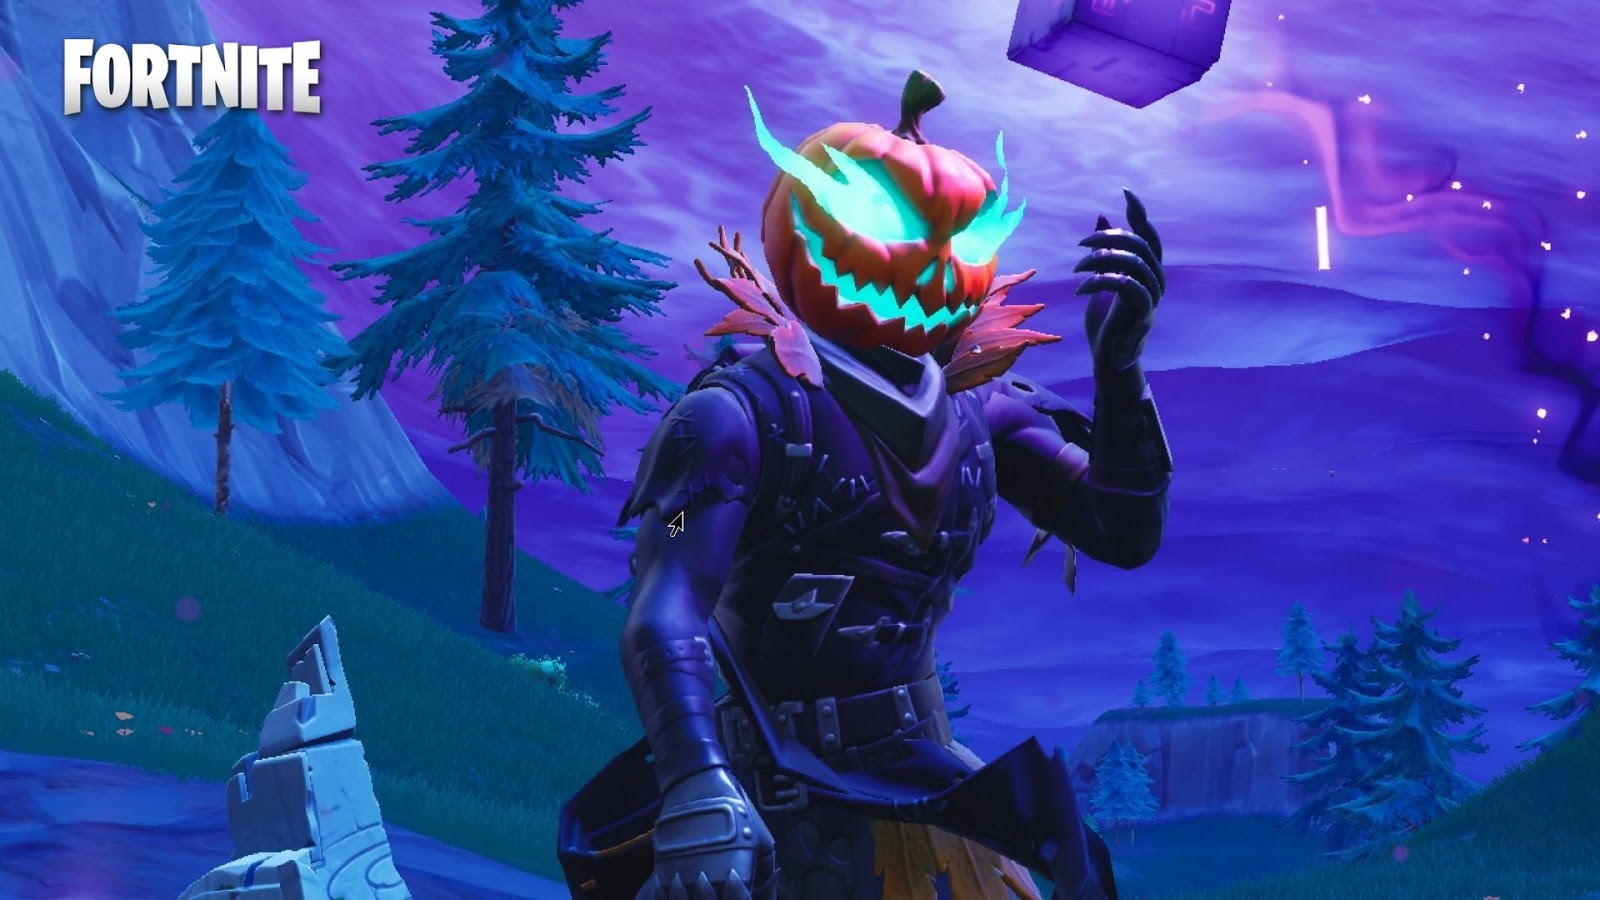 Cool Fortnite Pictures Hd Fortnite Free Rare Skins